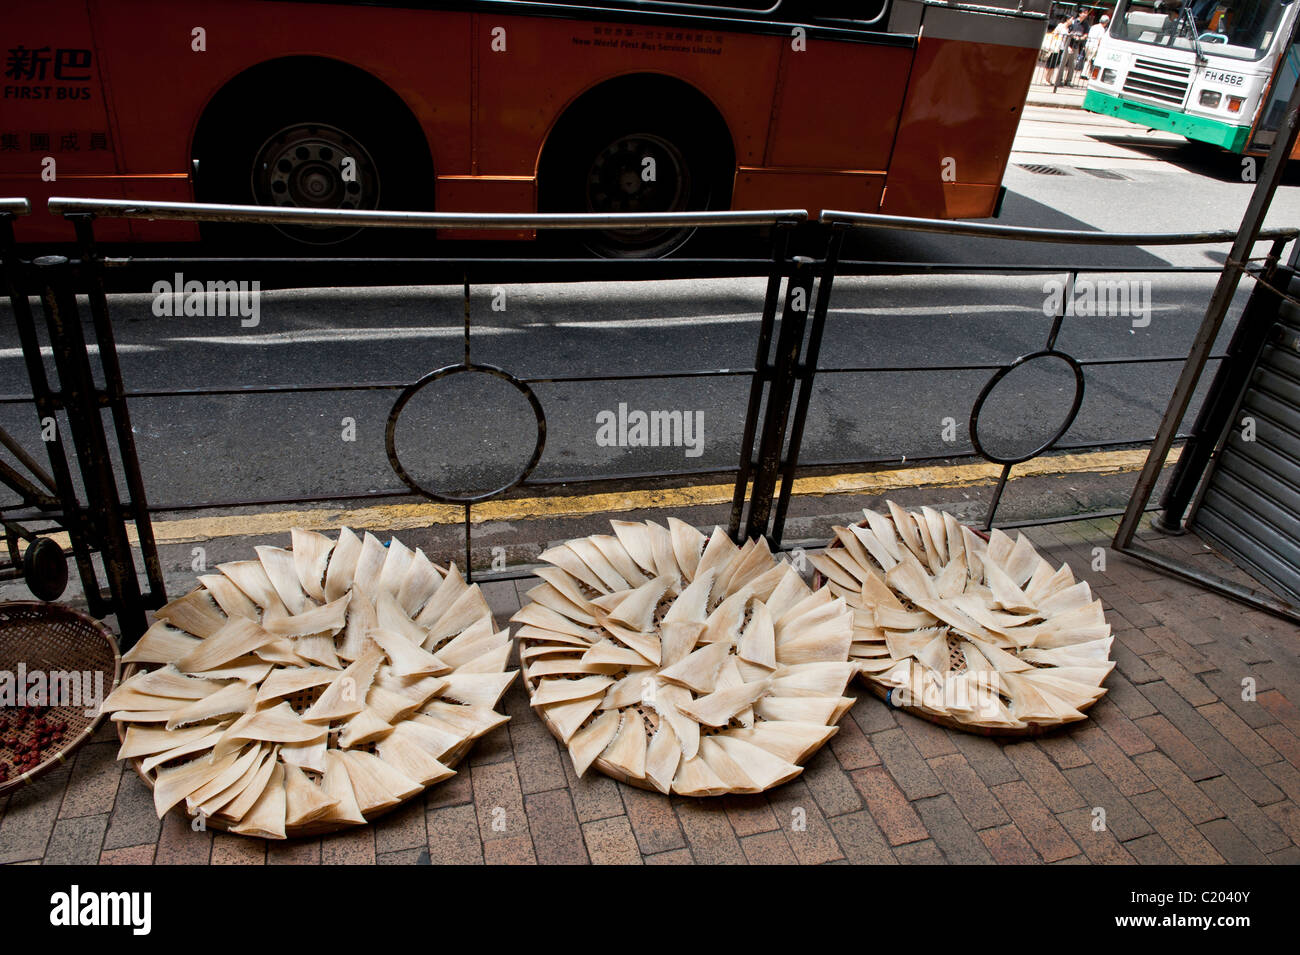 China, Hong Kong, Shark fin drying in one of the main streets of the centre of the city. - Stock Image